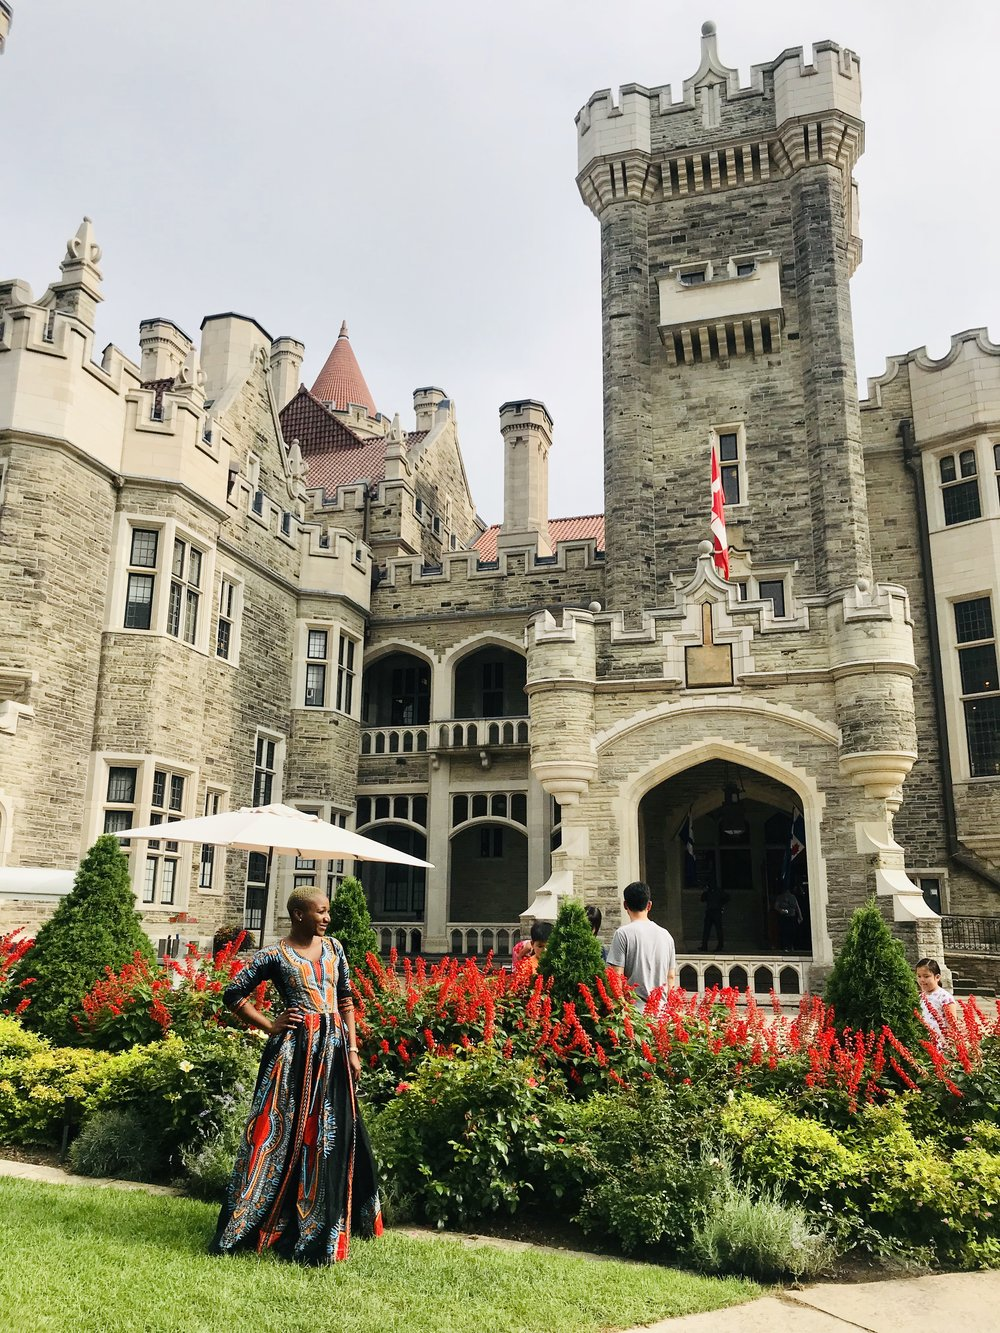 The entrance to Casa Loma looks like something out of a story book!